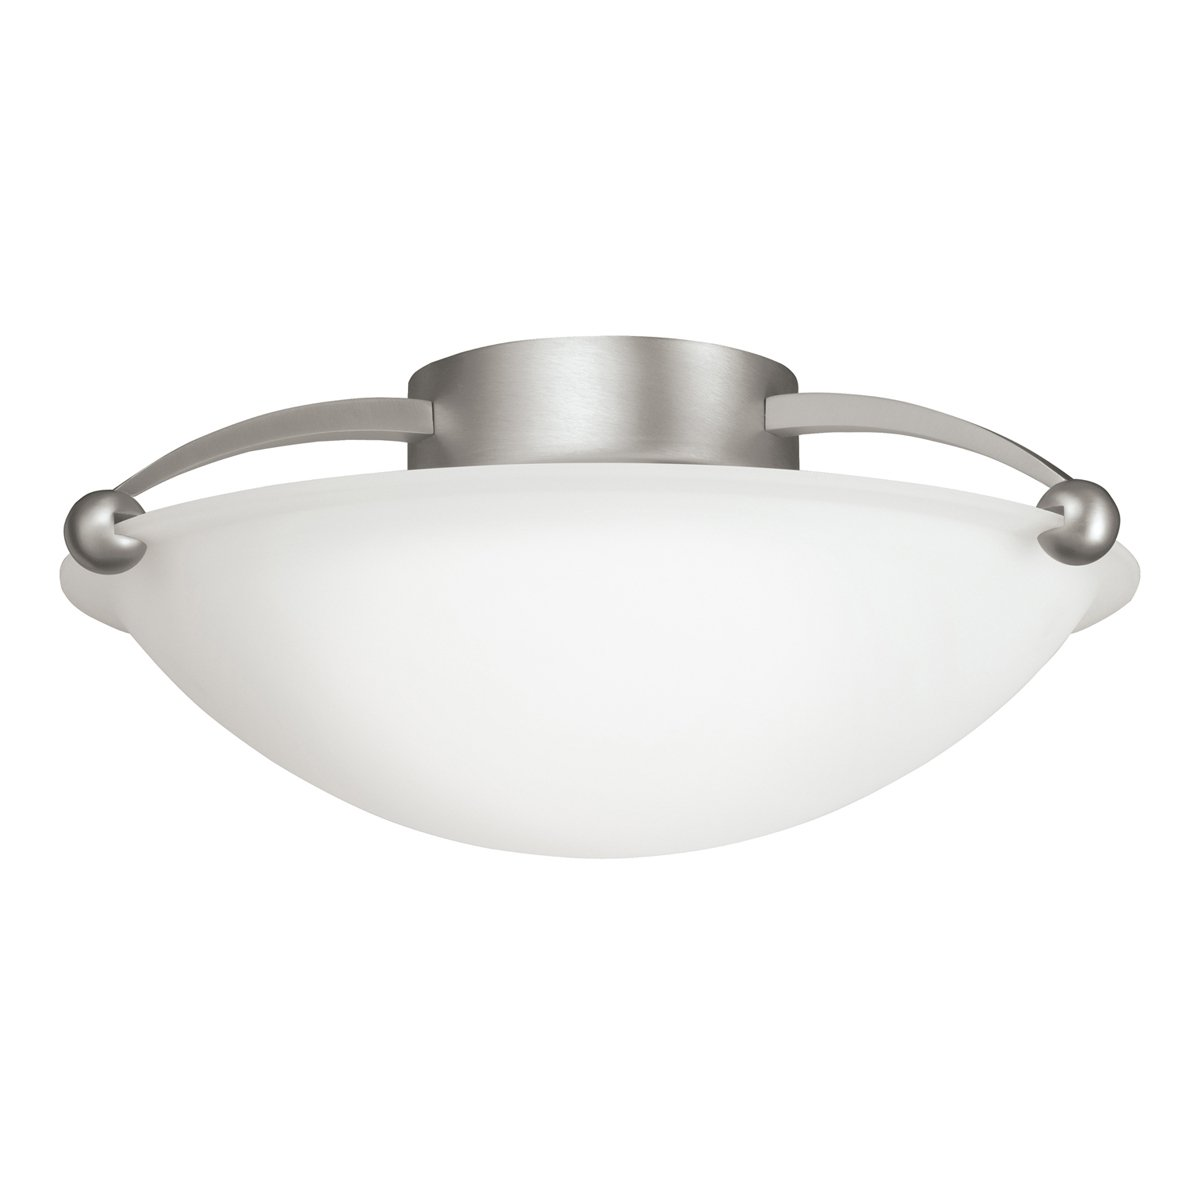 Kichler 8405ni two light semi flush mount close to ceiling light kichler 8405ni two light semi flush mount close to ceiling light fixtures amazon arubaitofo Image collections